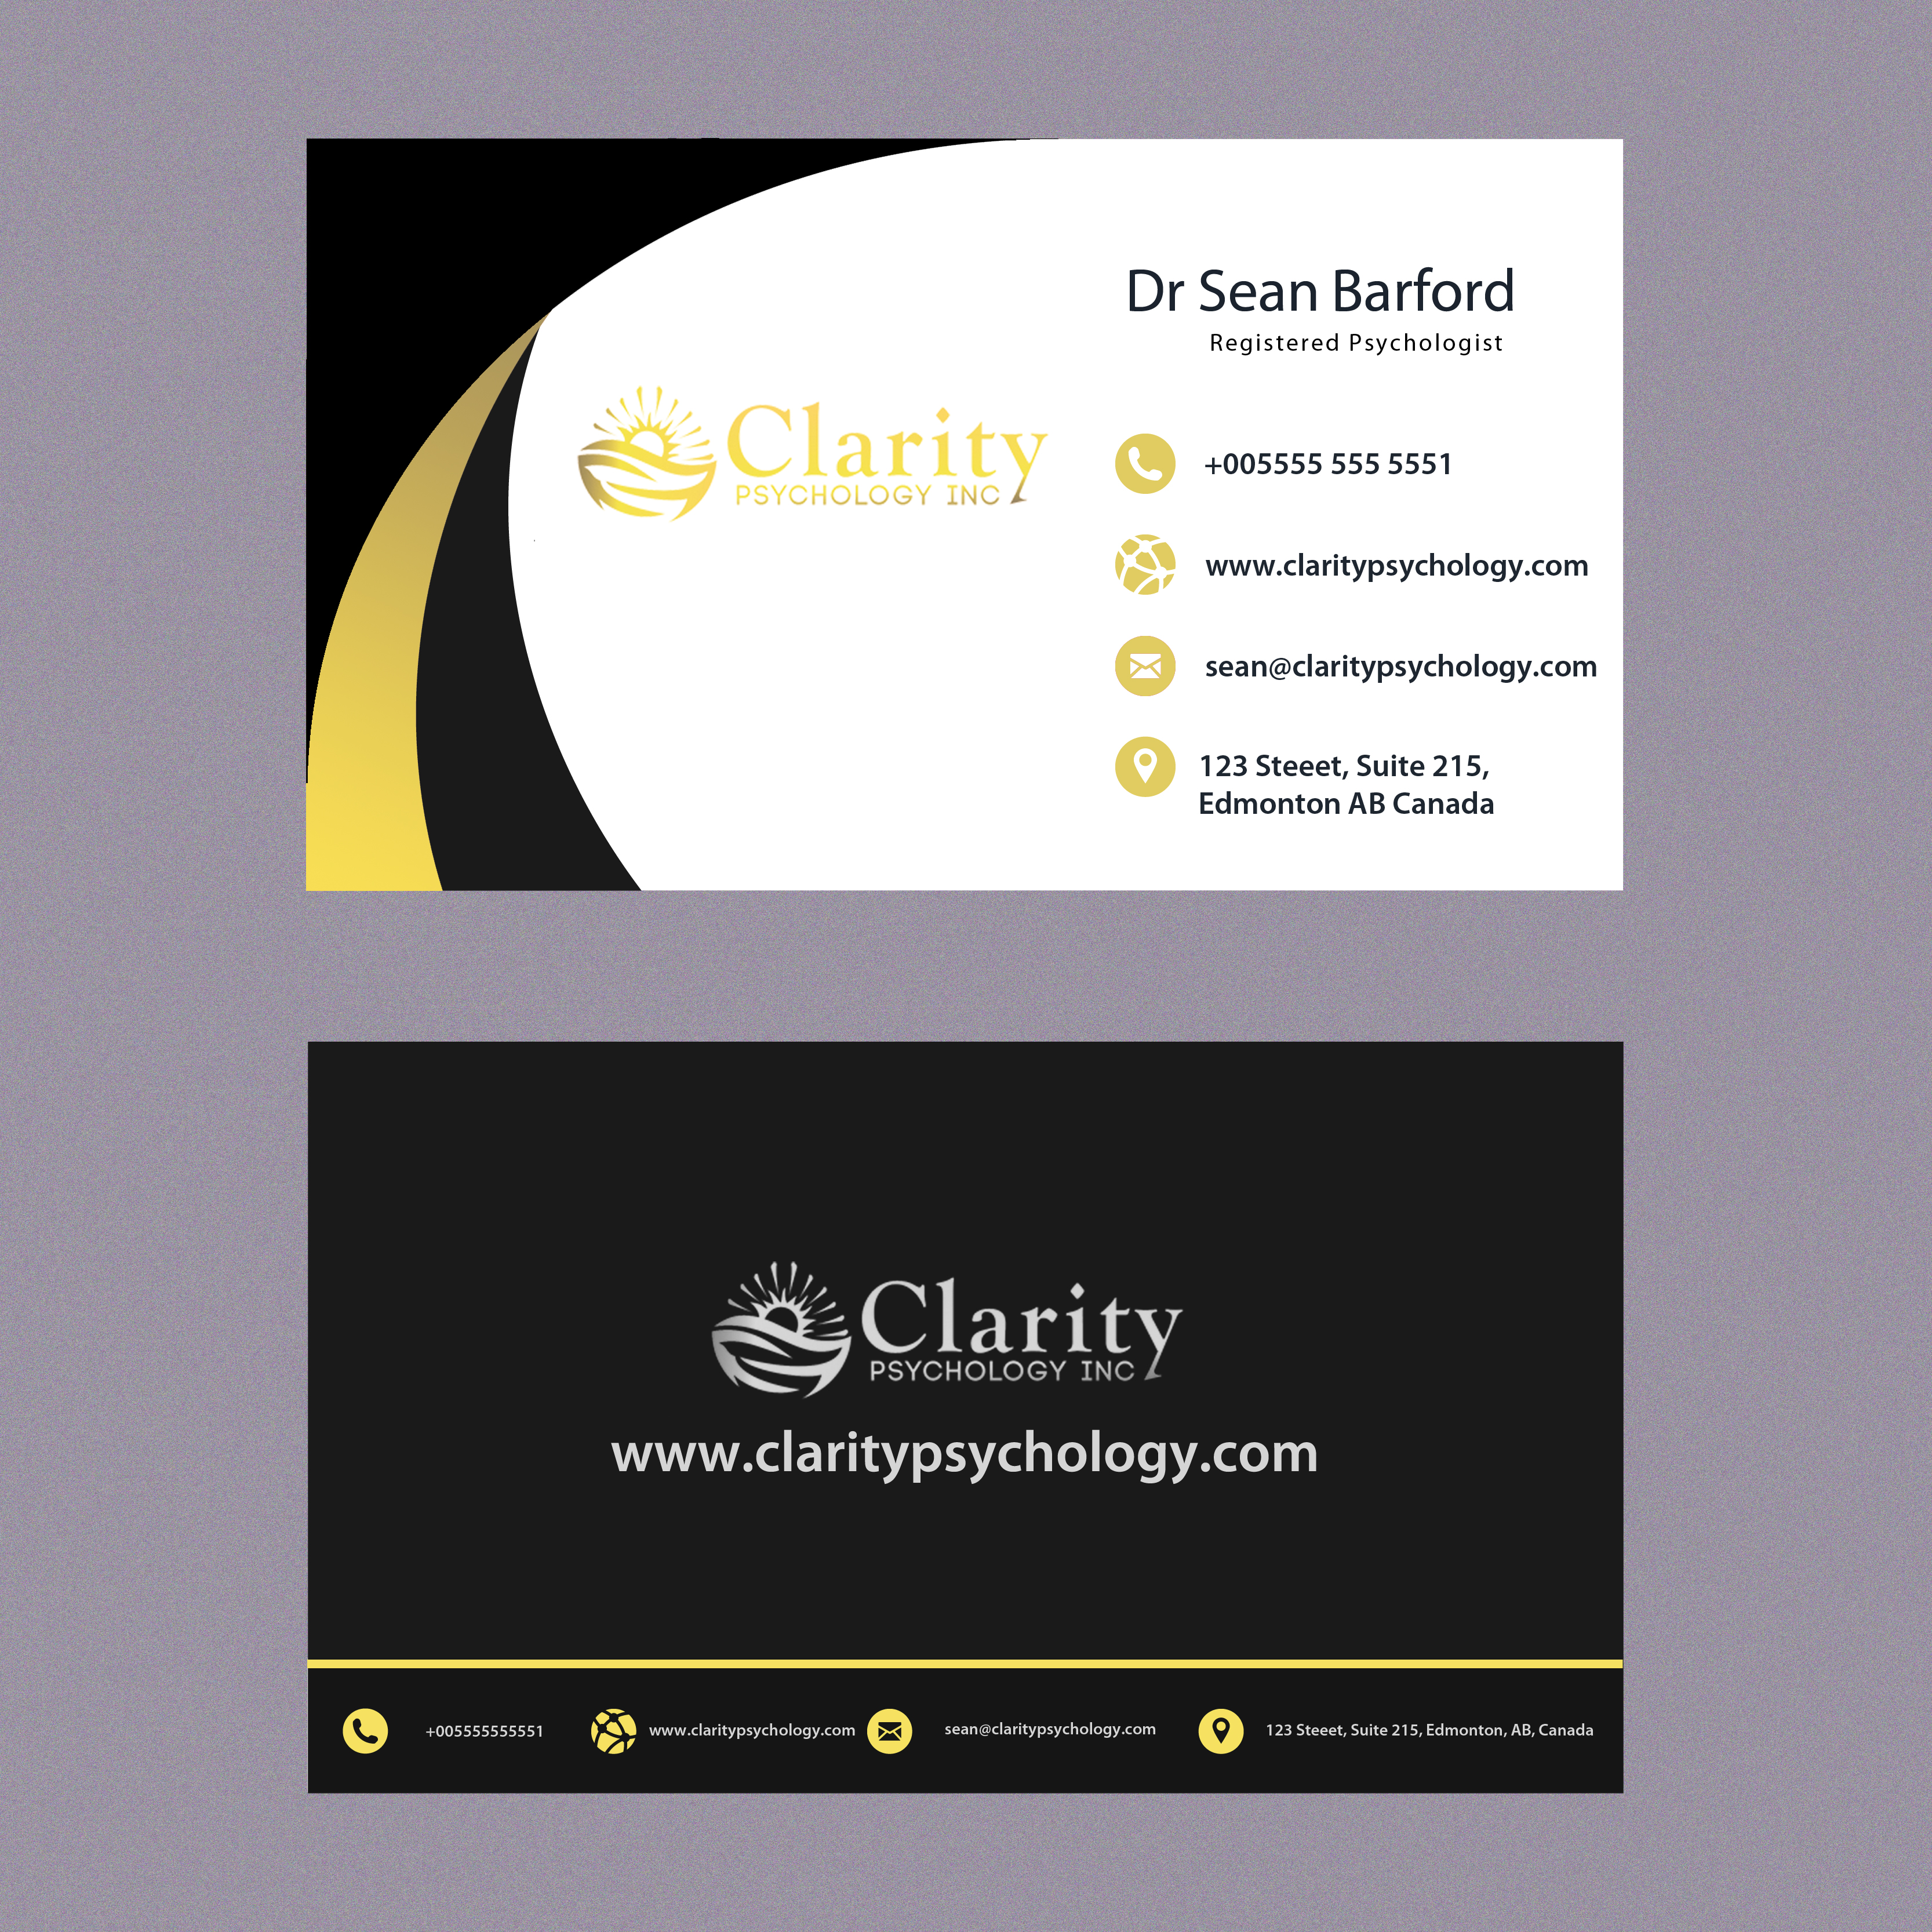 Business Cards Edmonton Ab Images - Card Design And Card Template